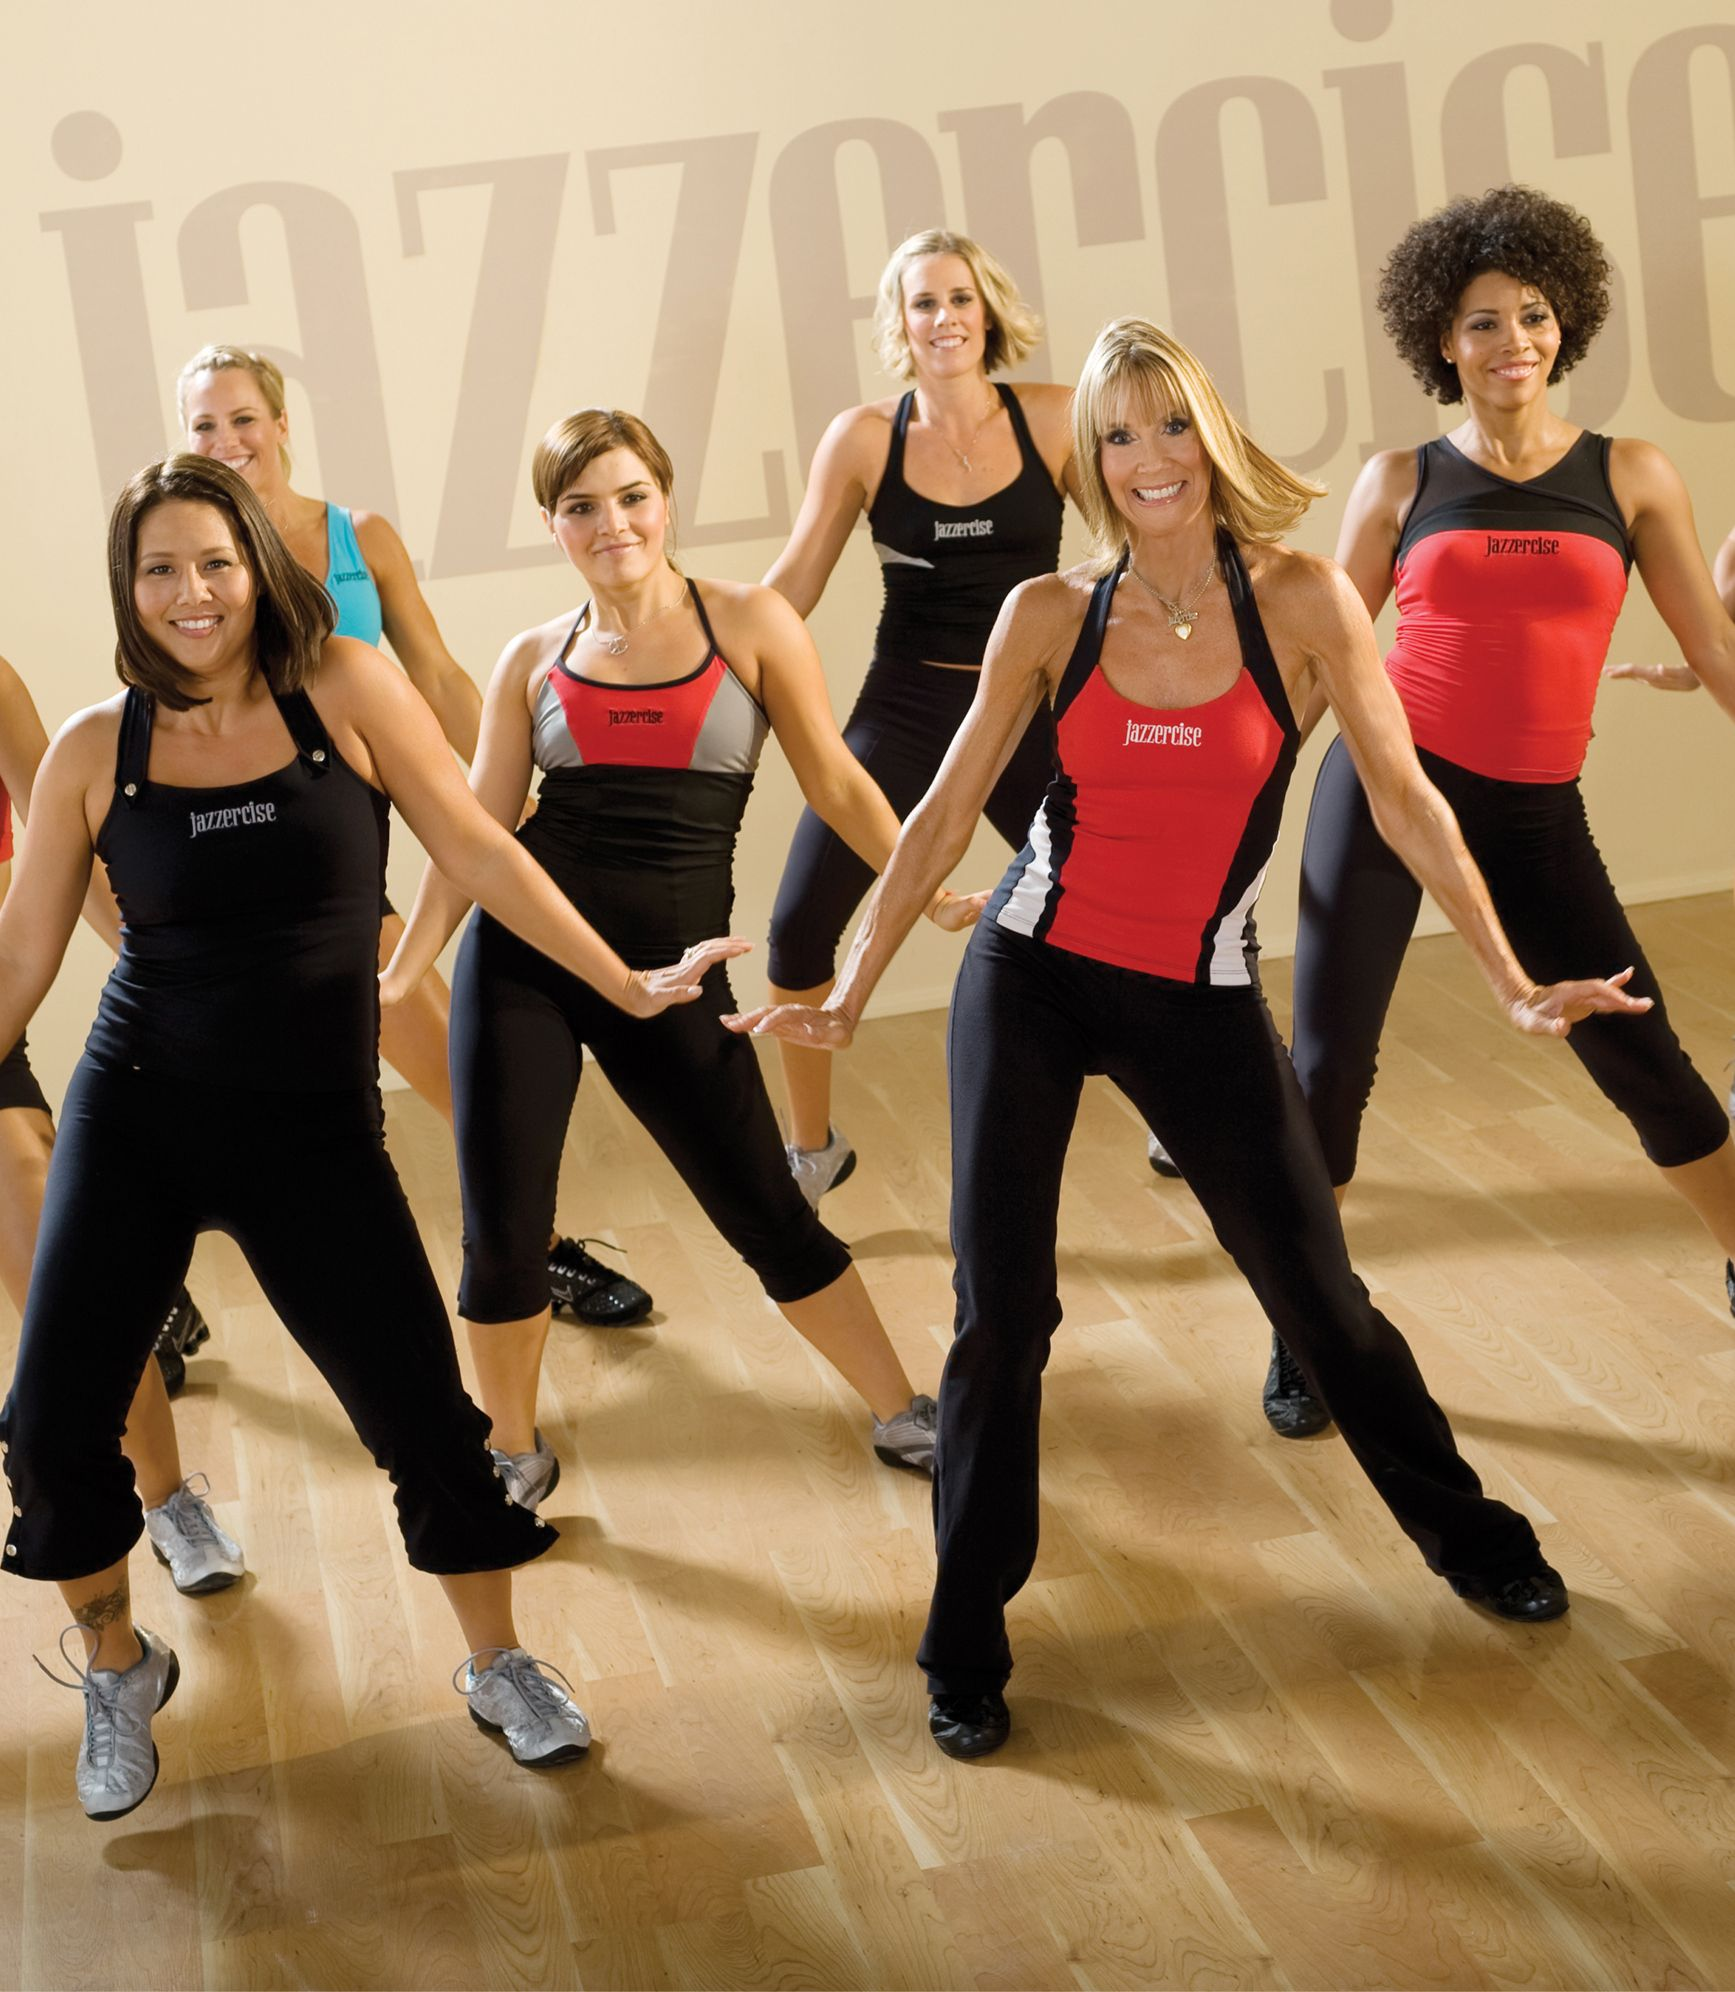 Jazzercise Fitness, Fun workouts, Simple dance